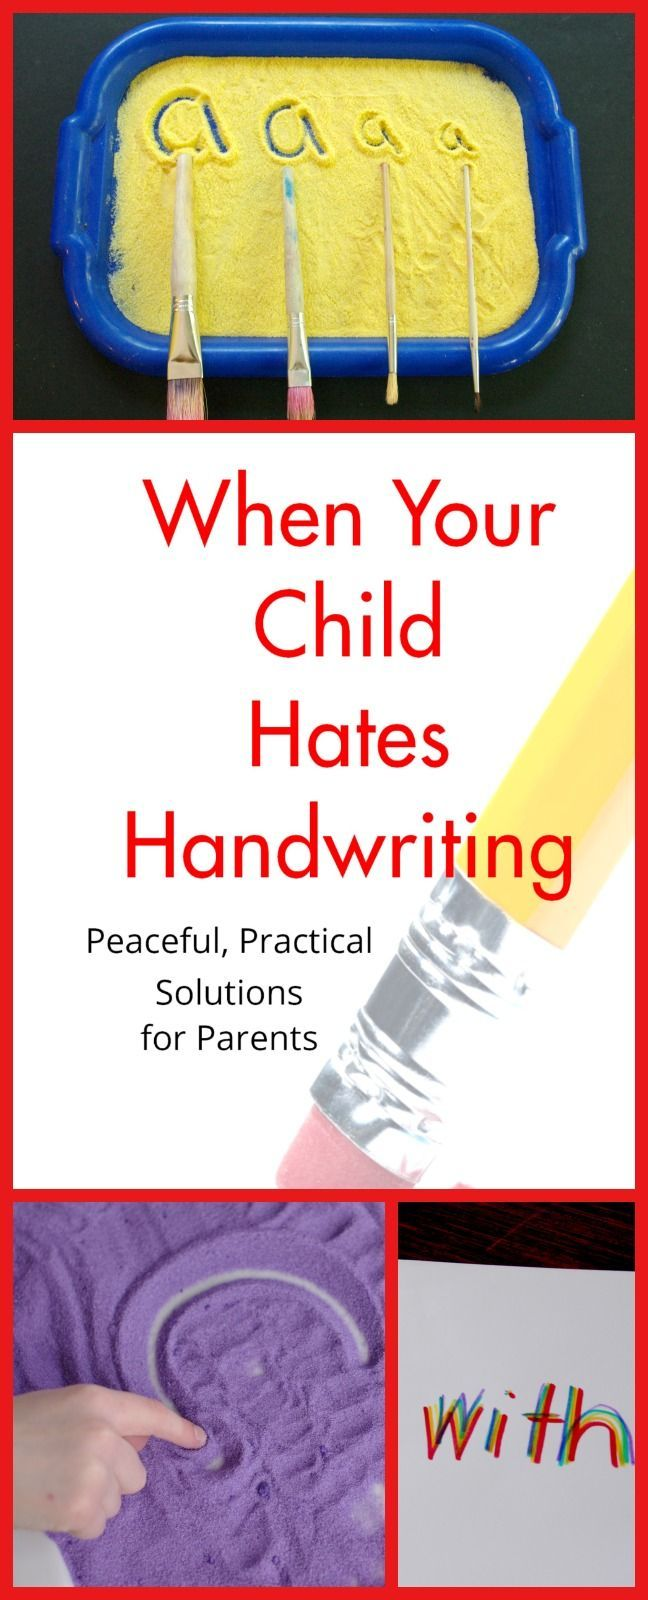 When Your Child Hates Handwriting --The Book   Handwriting ...